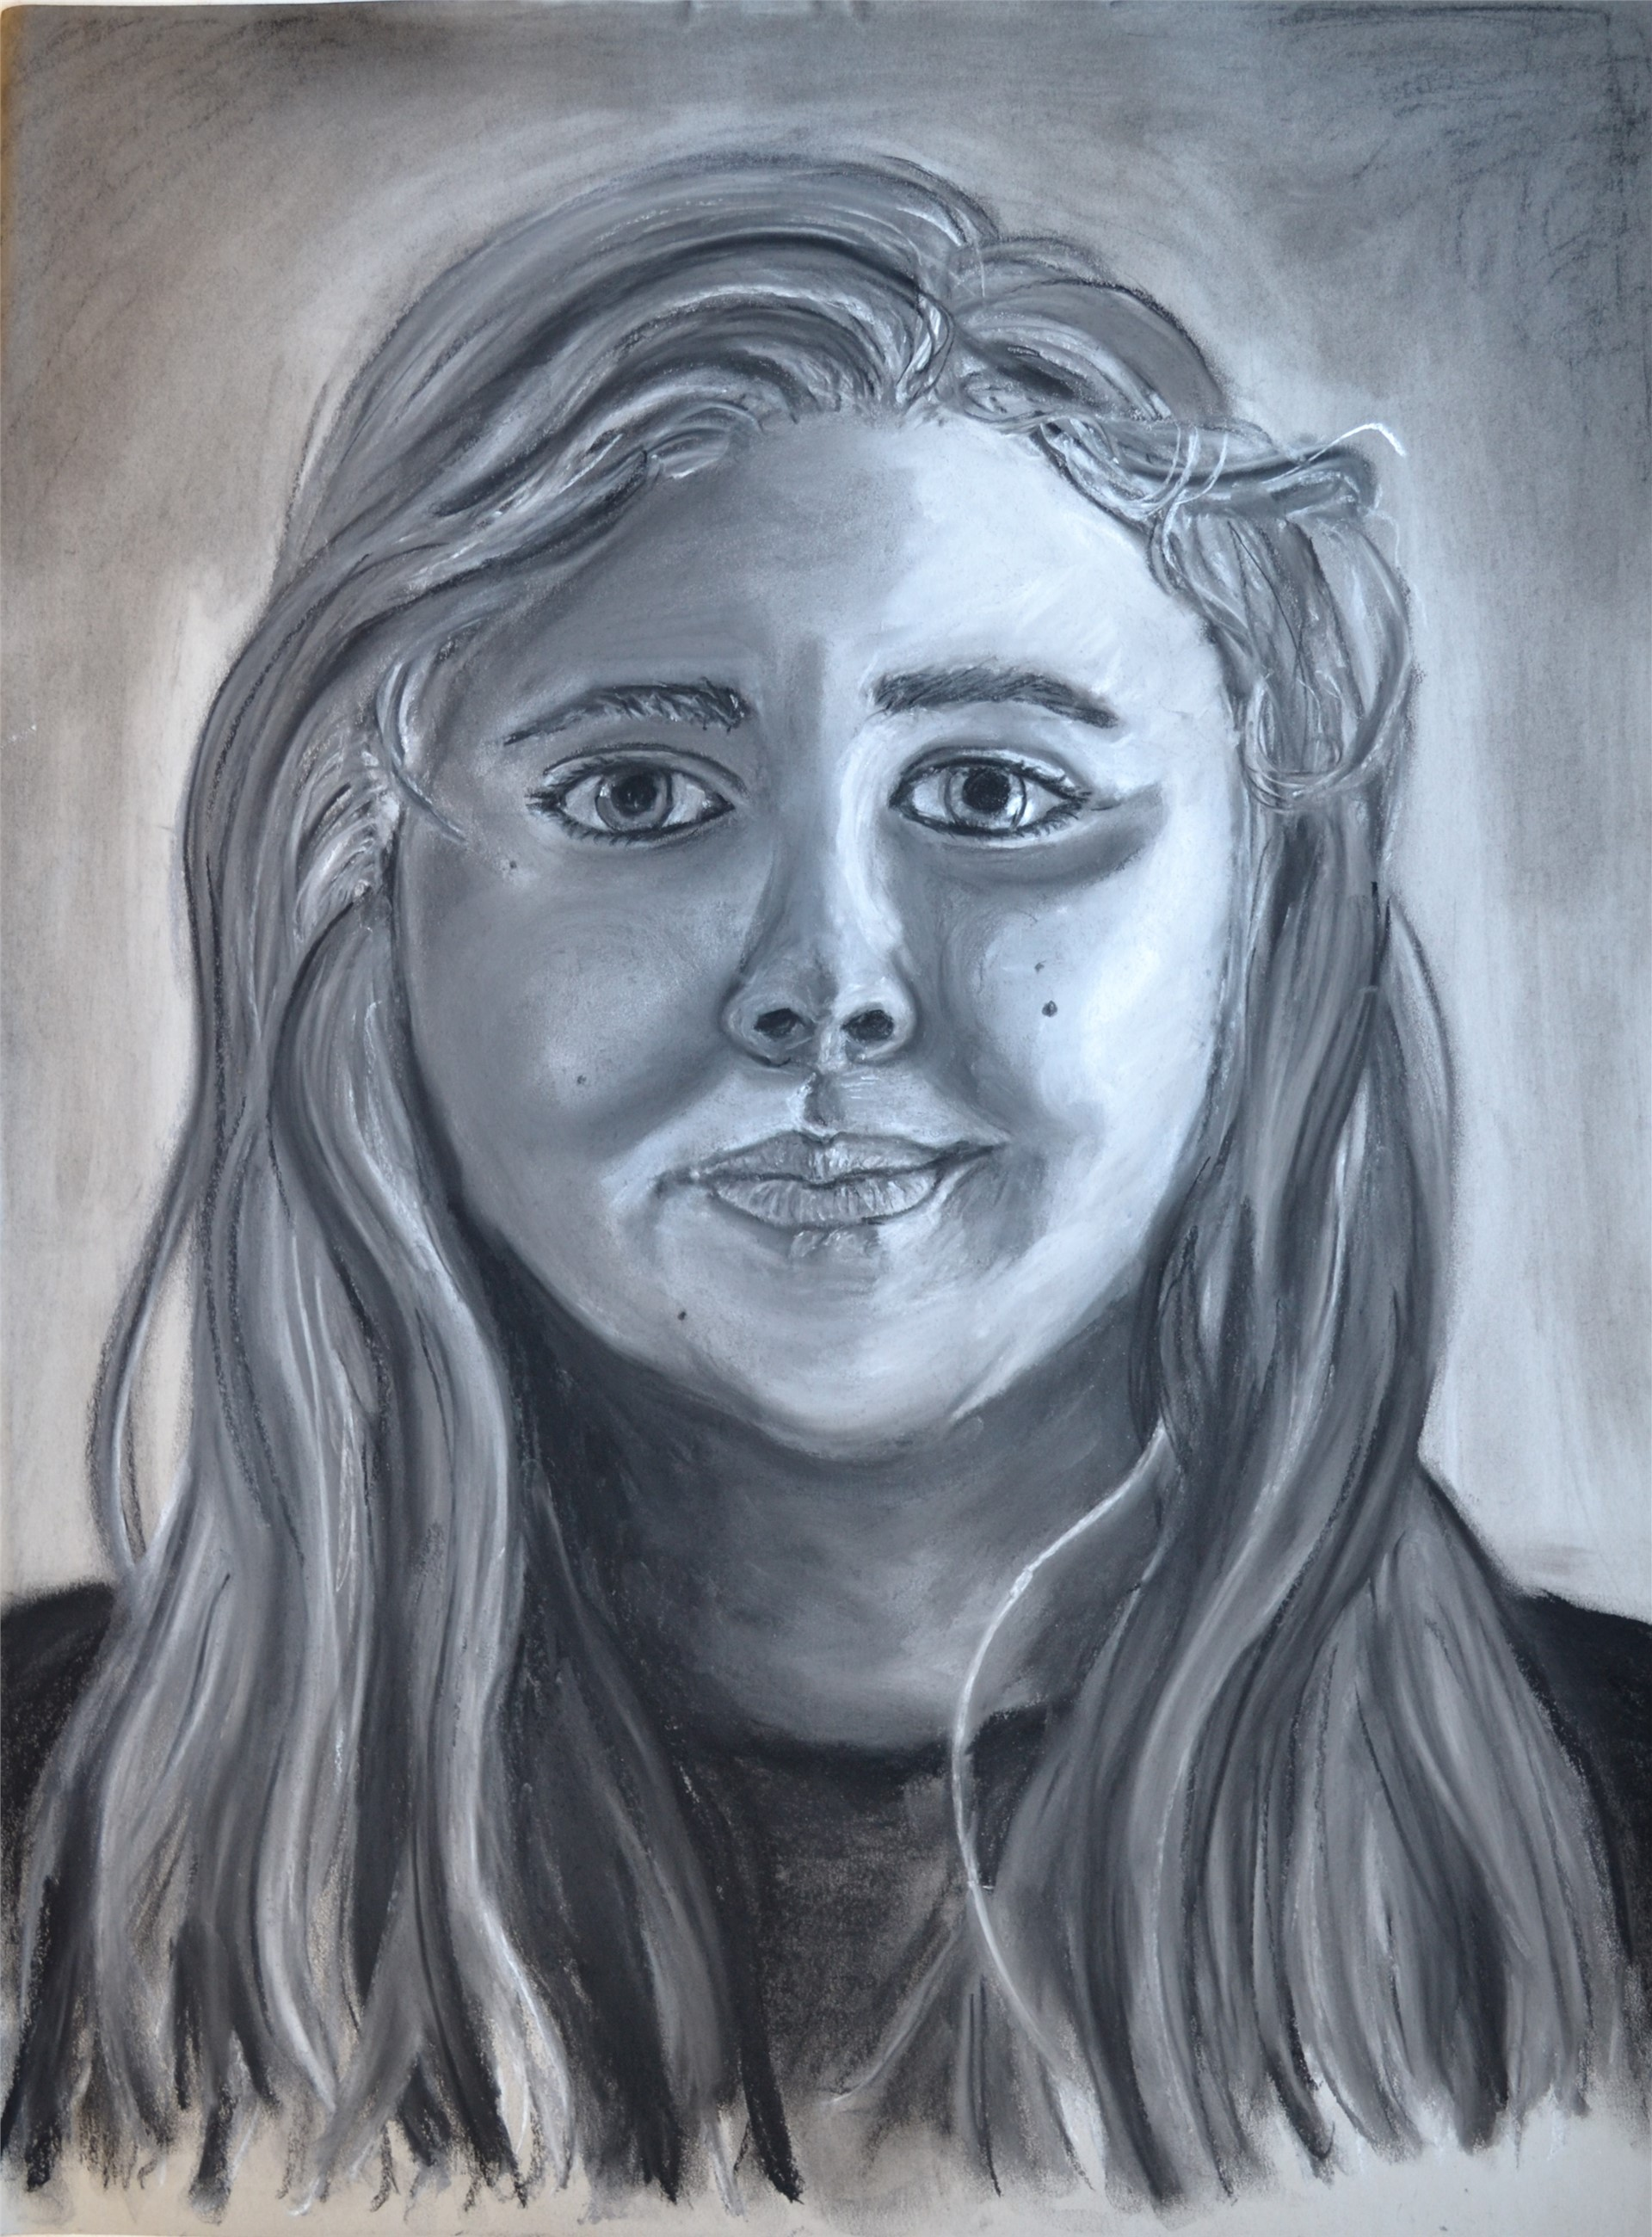 Amanda Rivers, Self Portrait, charcoal, pastel, on gray bogus, 24 x 18, 2016